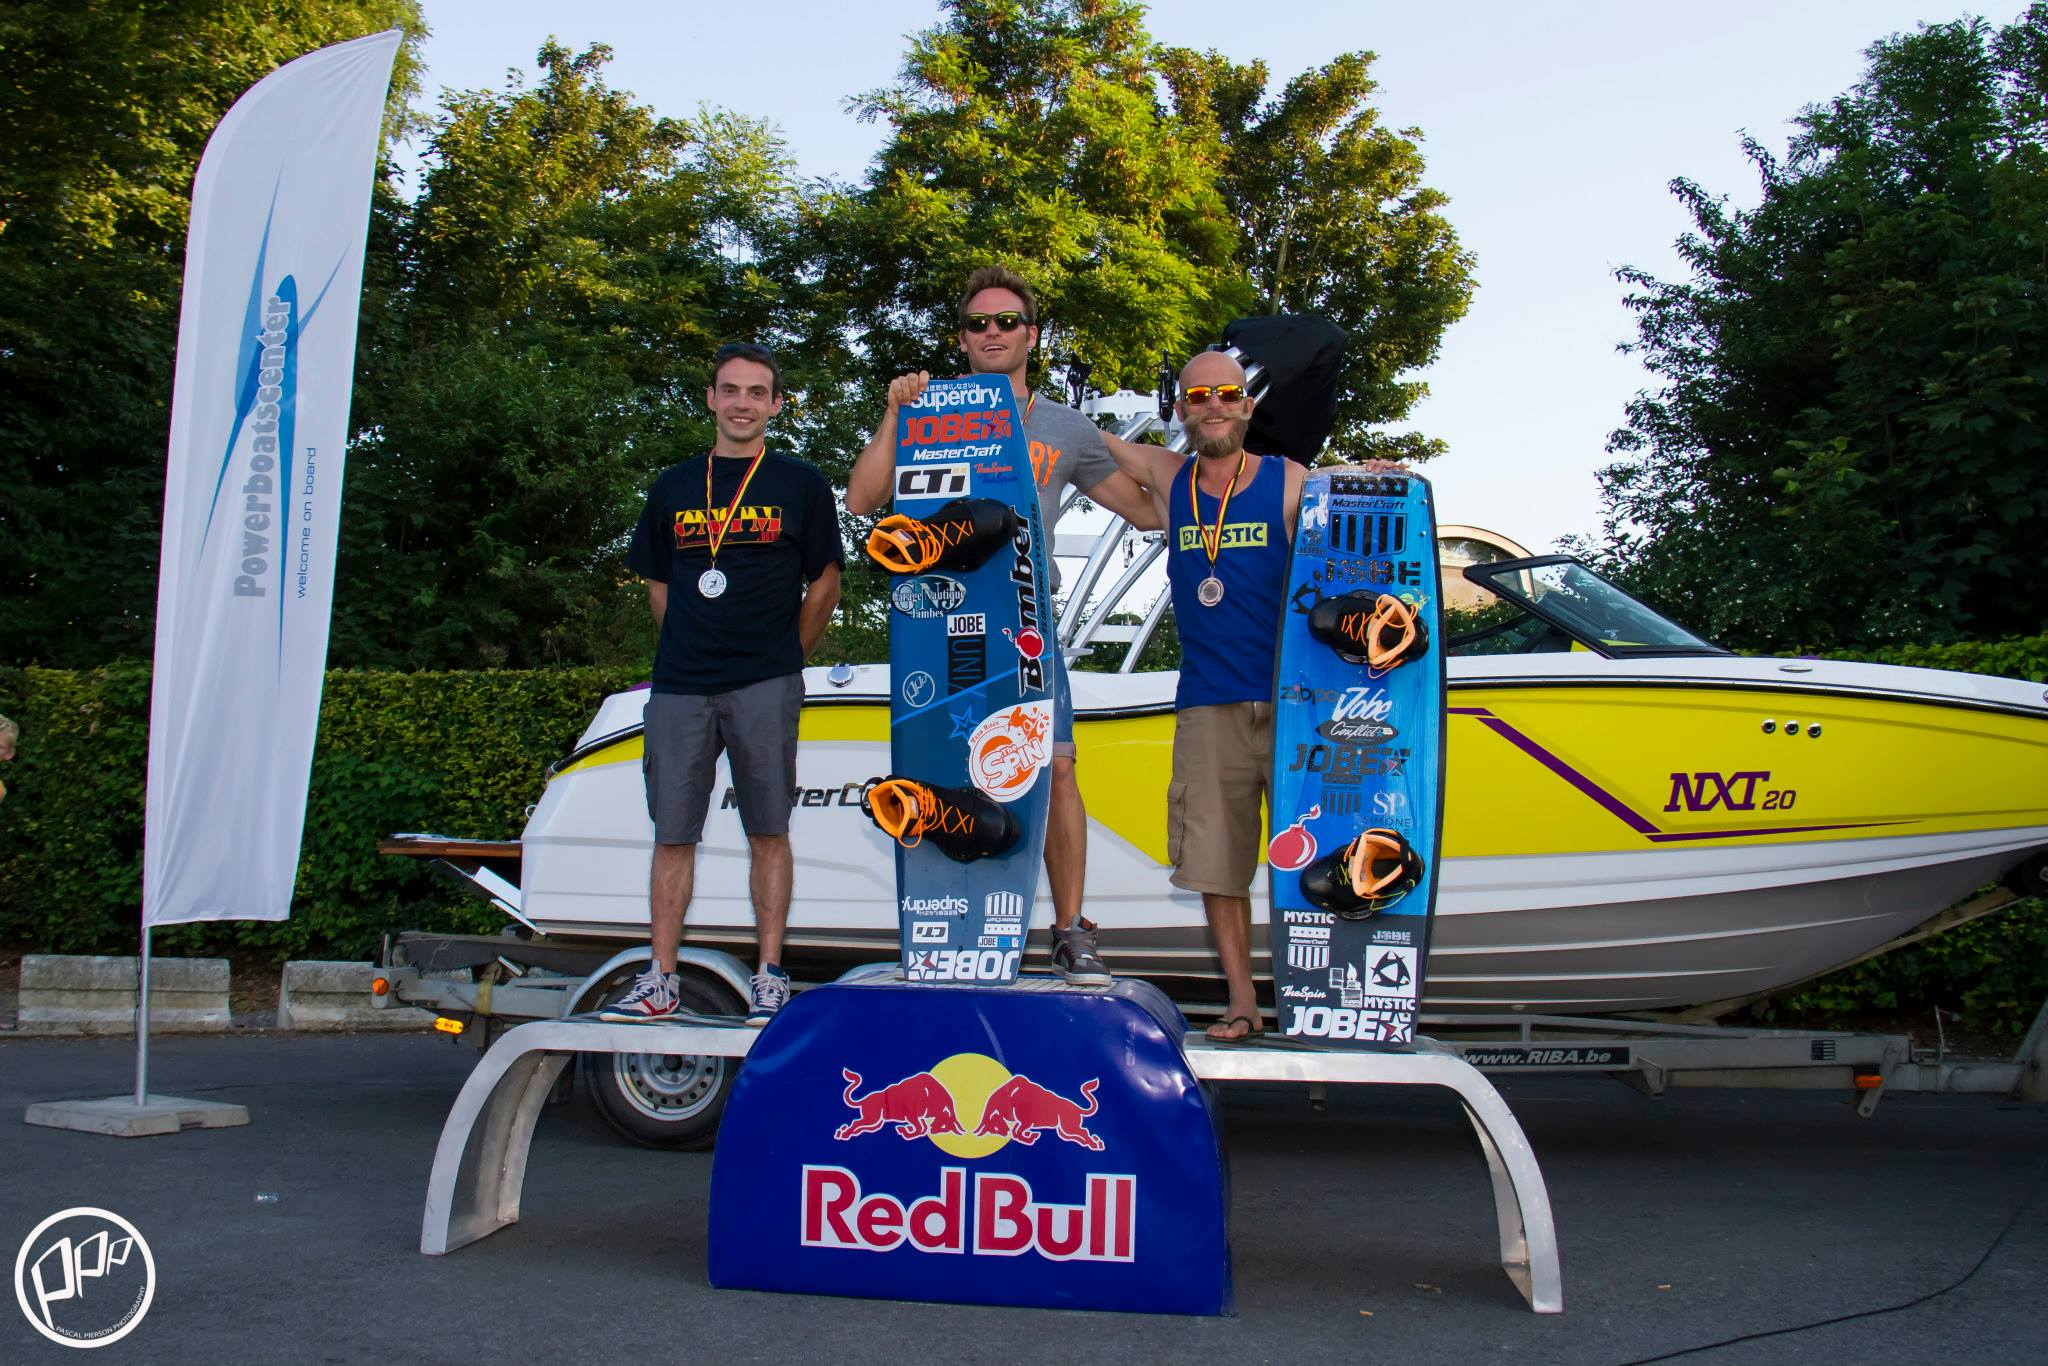 Jobe winners at the Masters Wakeboat (Belgium National Championship)